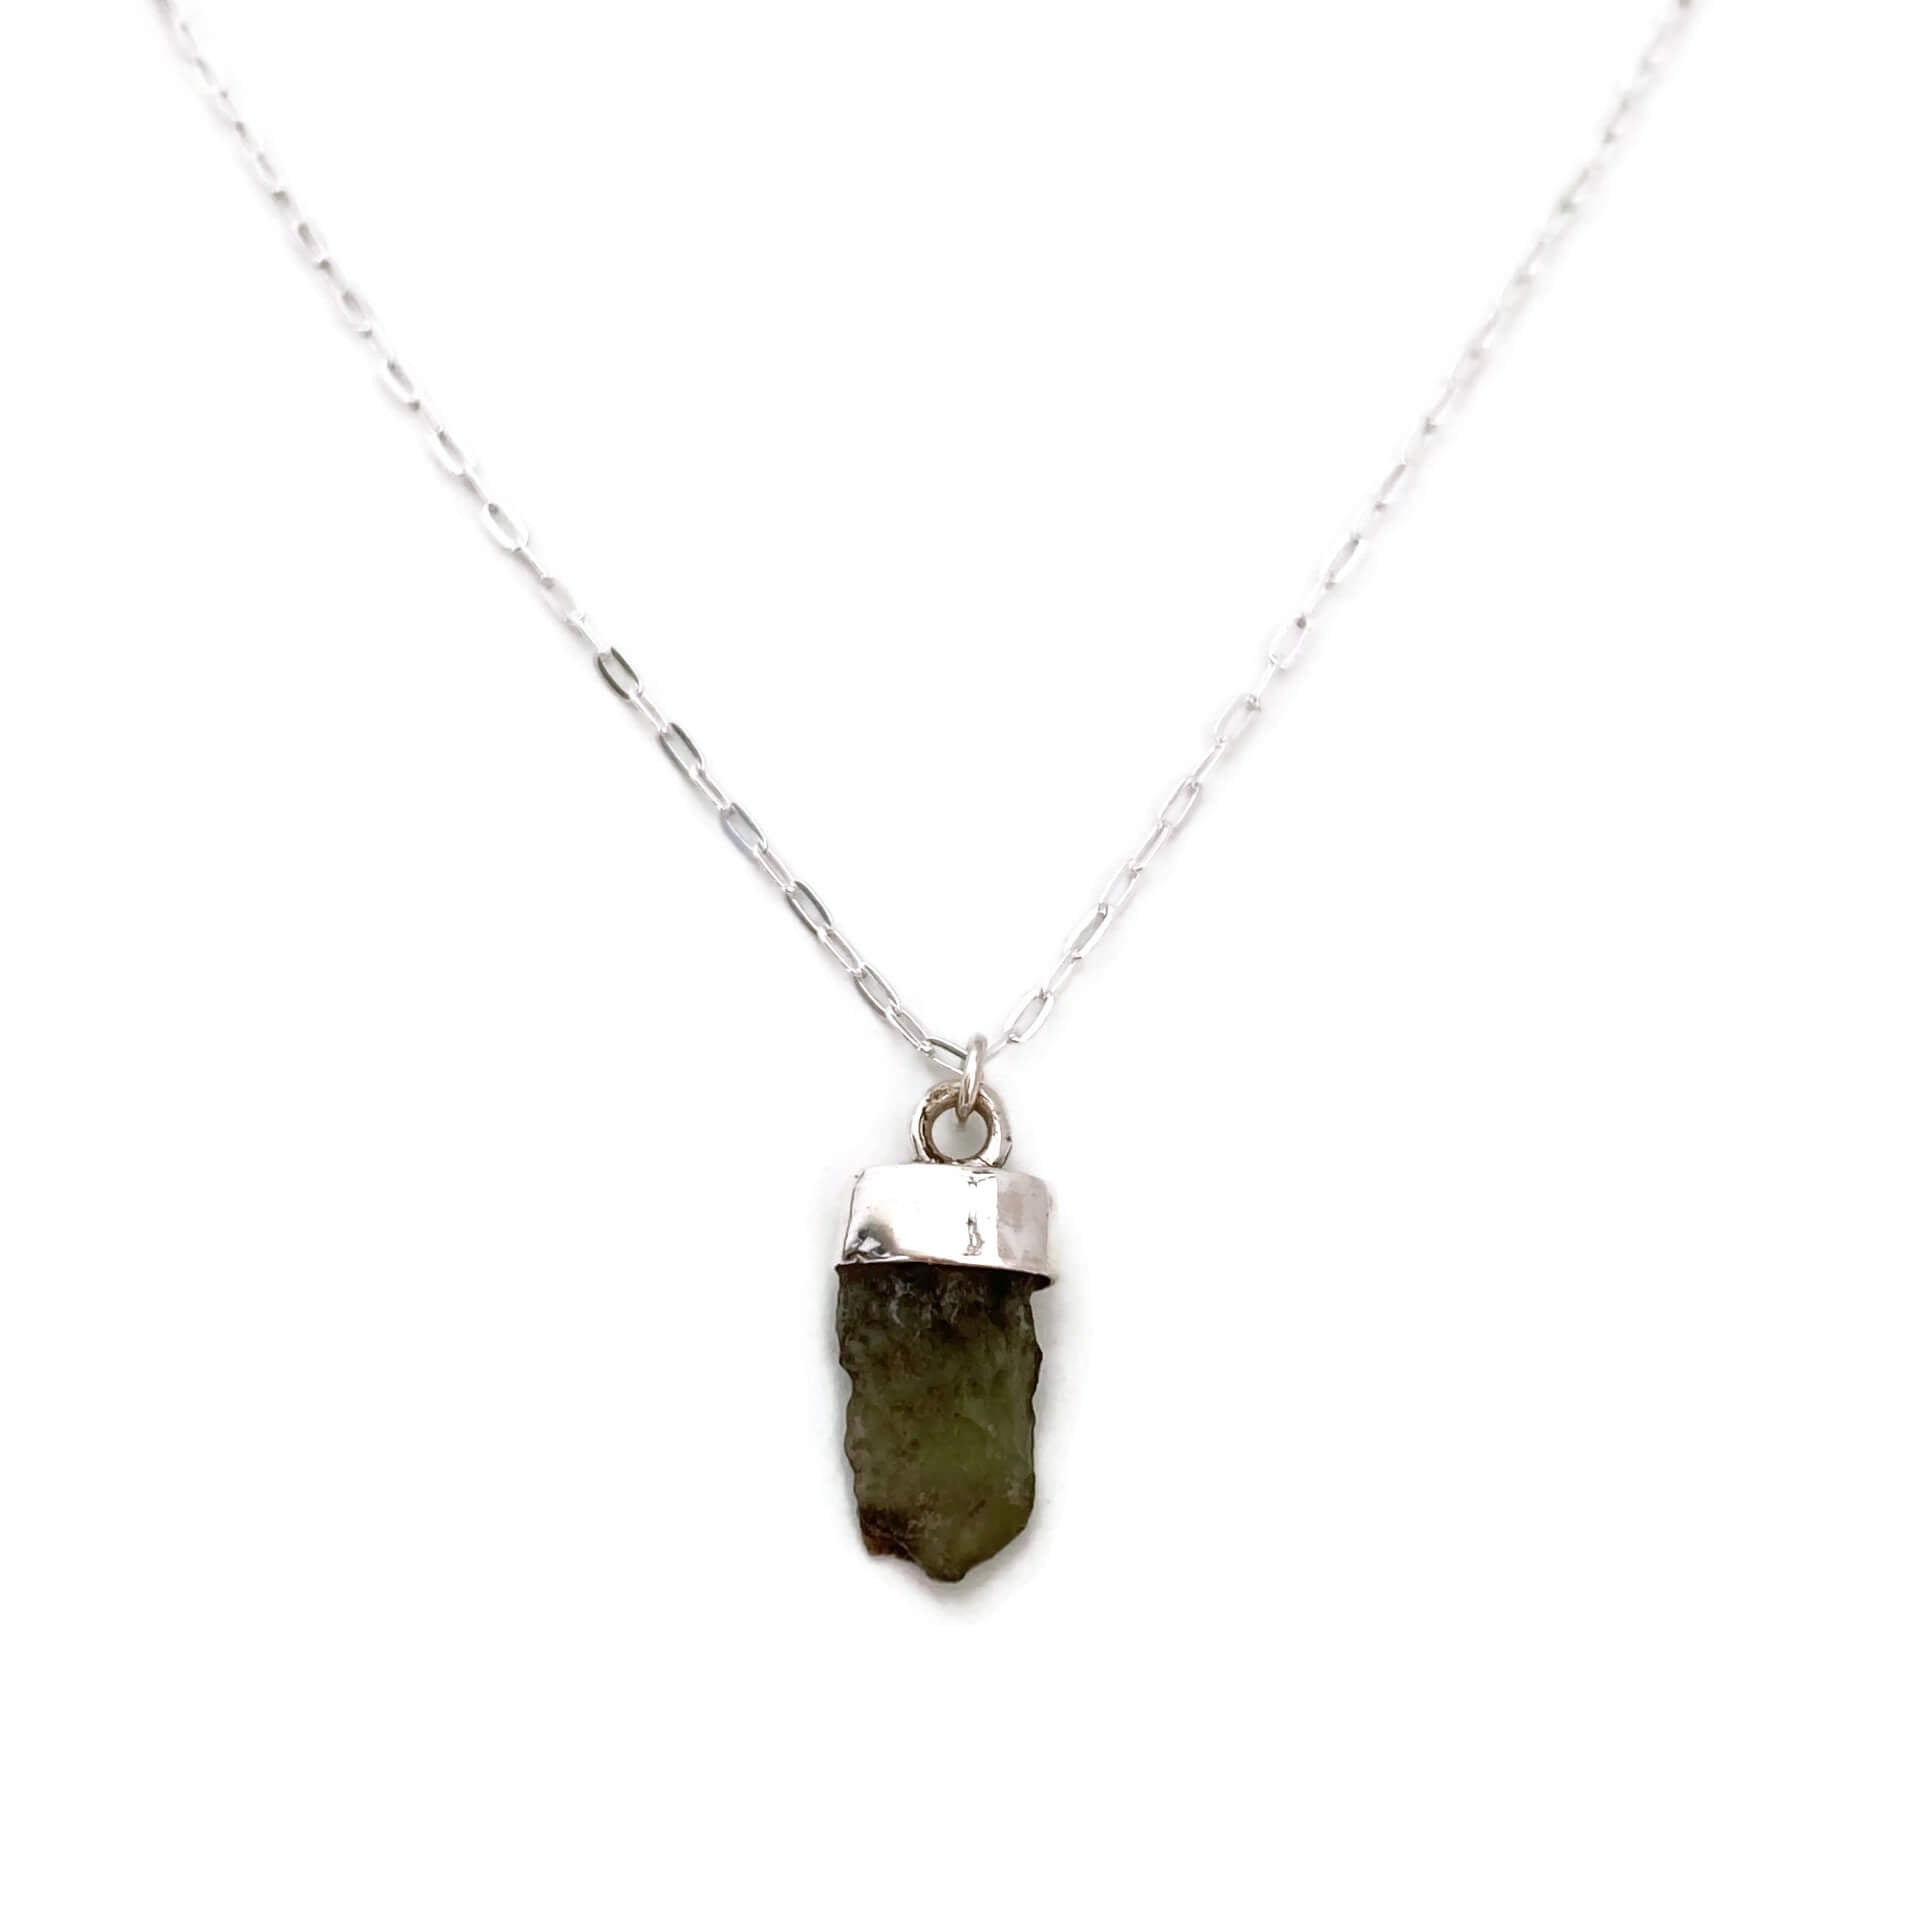 "This natural moldavite jewelry is made of real moldavite with sterling silver chain.  This sterling silver chain is 18"".  It's simple and dainty."